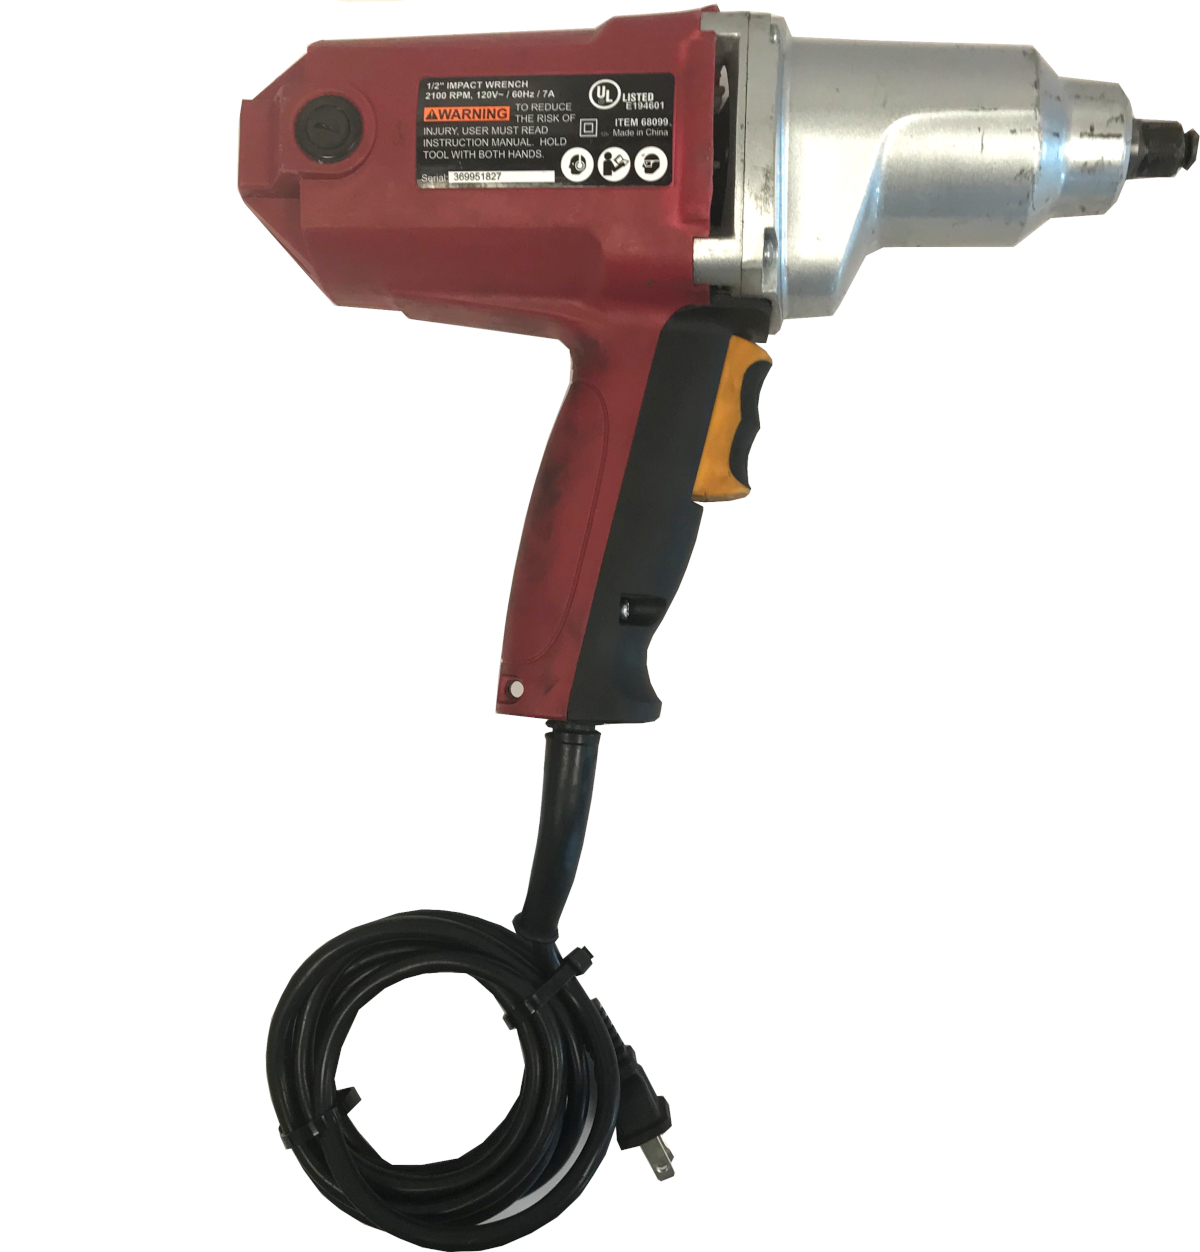 Chicago electric Corded Hand Tools 68099 image 2